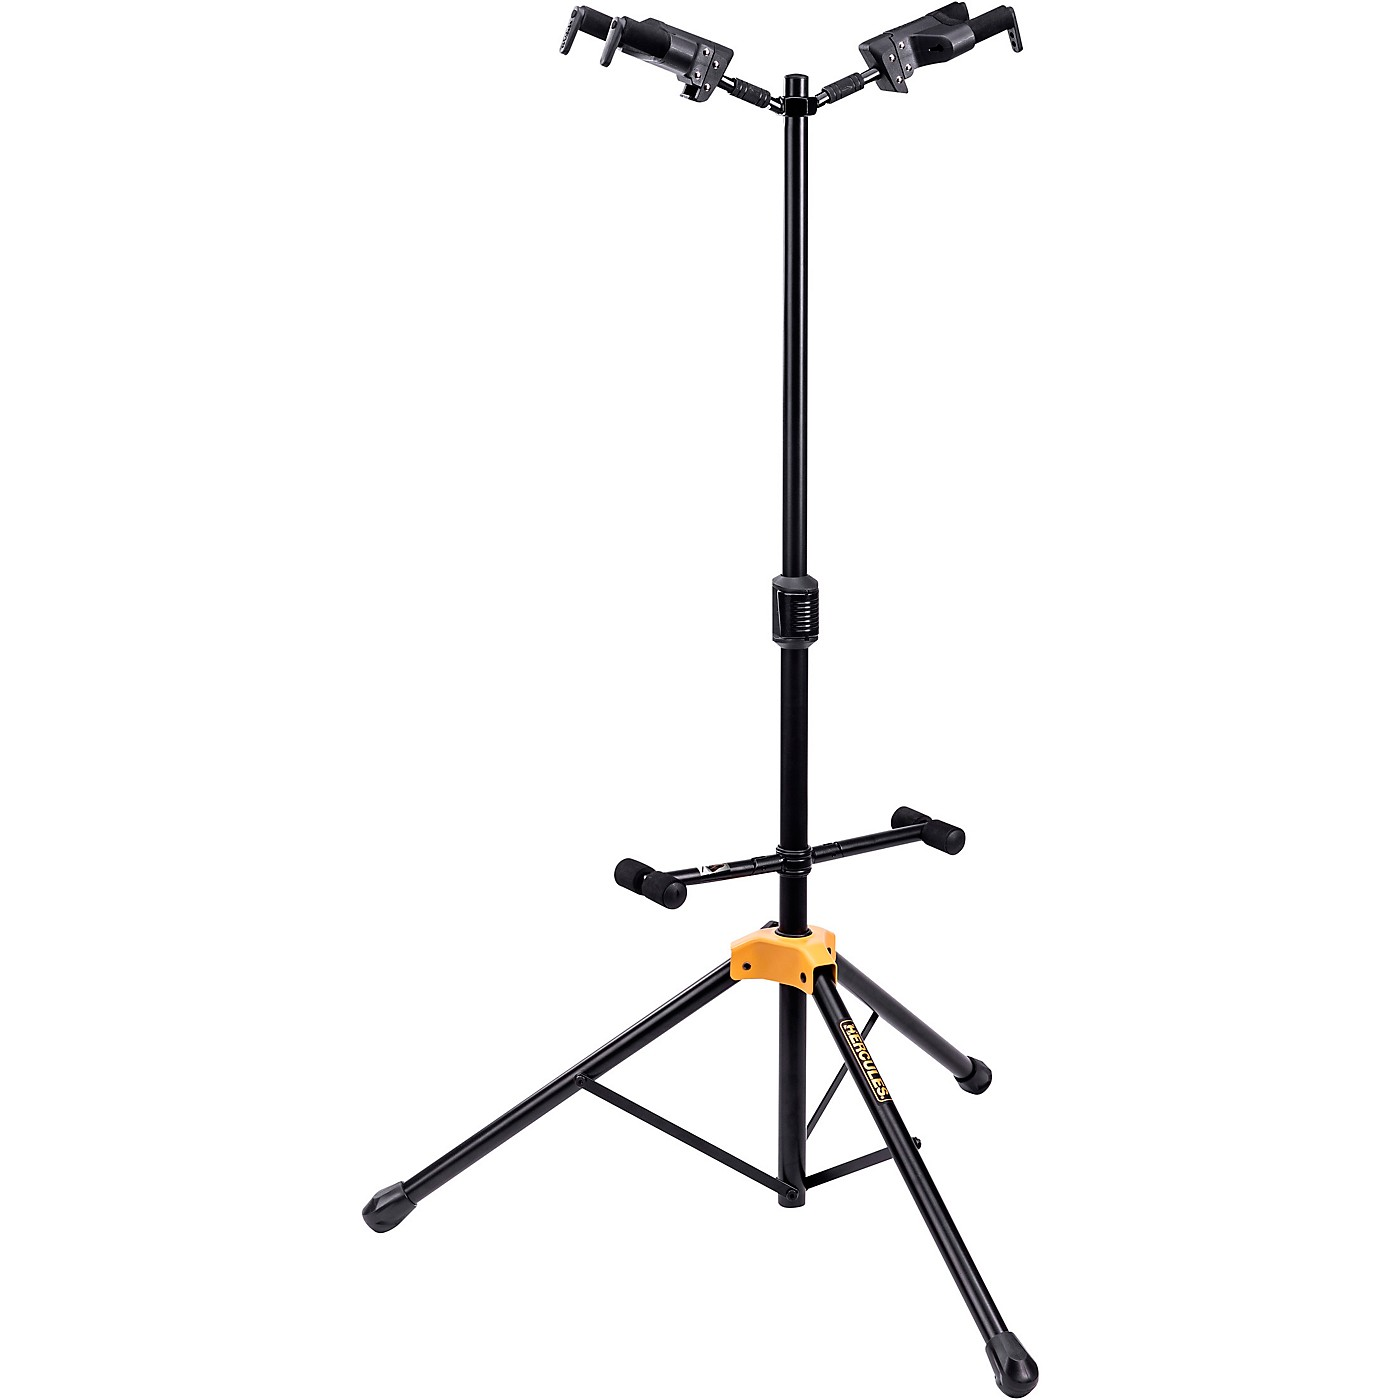 Hercules GS422BPLUS PLUS Series Universal AutoGrip Duo Guitar Stand with Foldable Backrest thumbnail